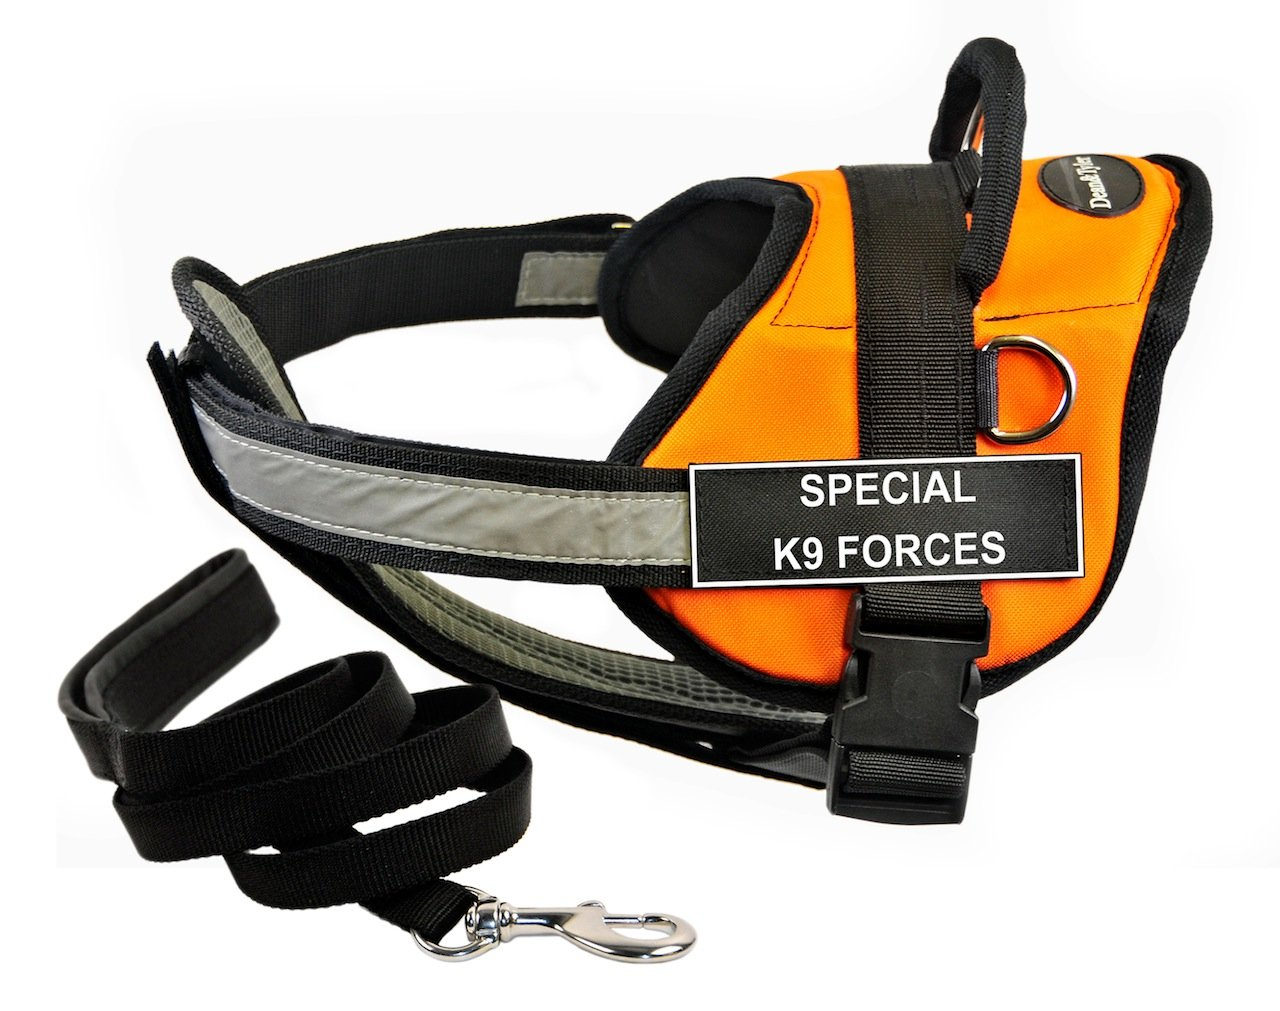 Dean & Tyler's DT Works orange SPECIAL K9 FORCES Harness with Chest Padding, X-Small, and Black 6 ft Padded Puppy Leash.